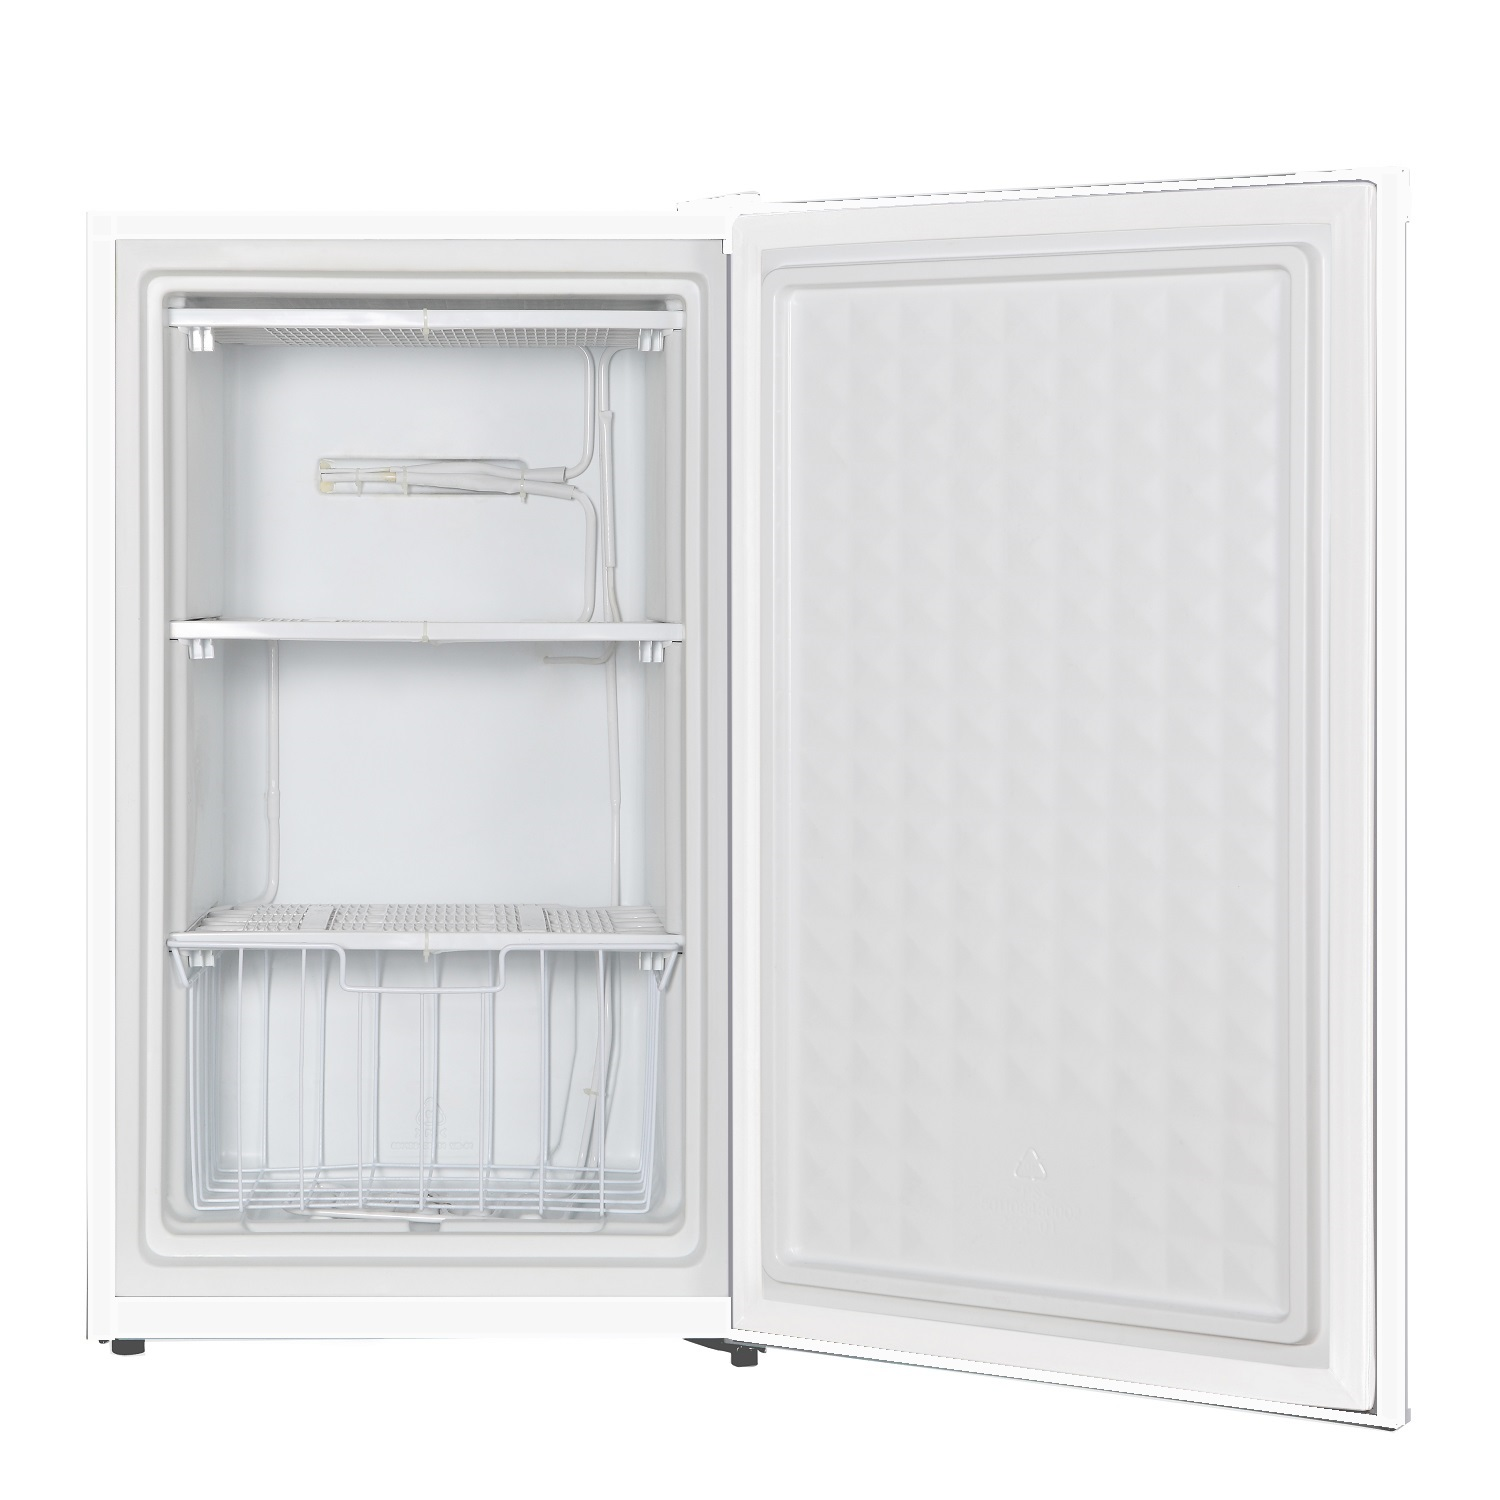 FR 109-30 W - Defrost Upright Freezer White - Capacity 3 cu.ft